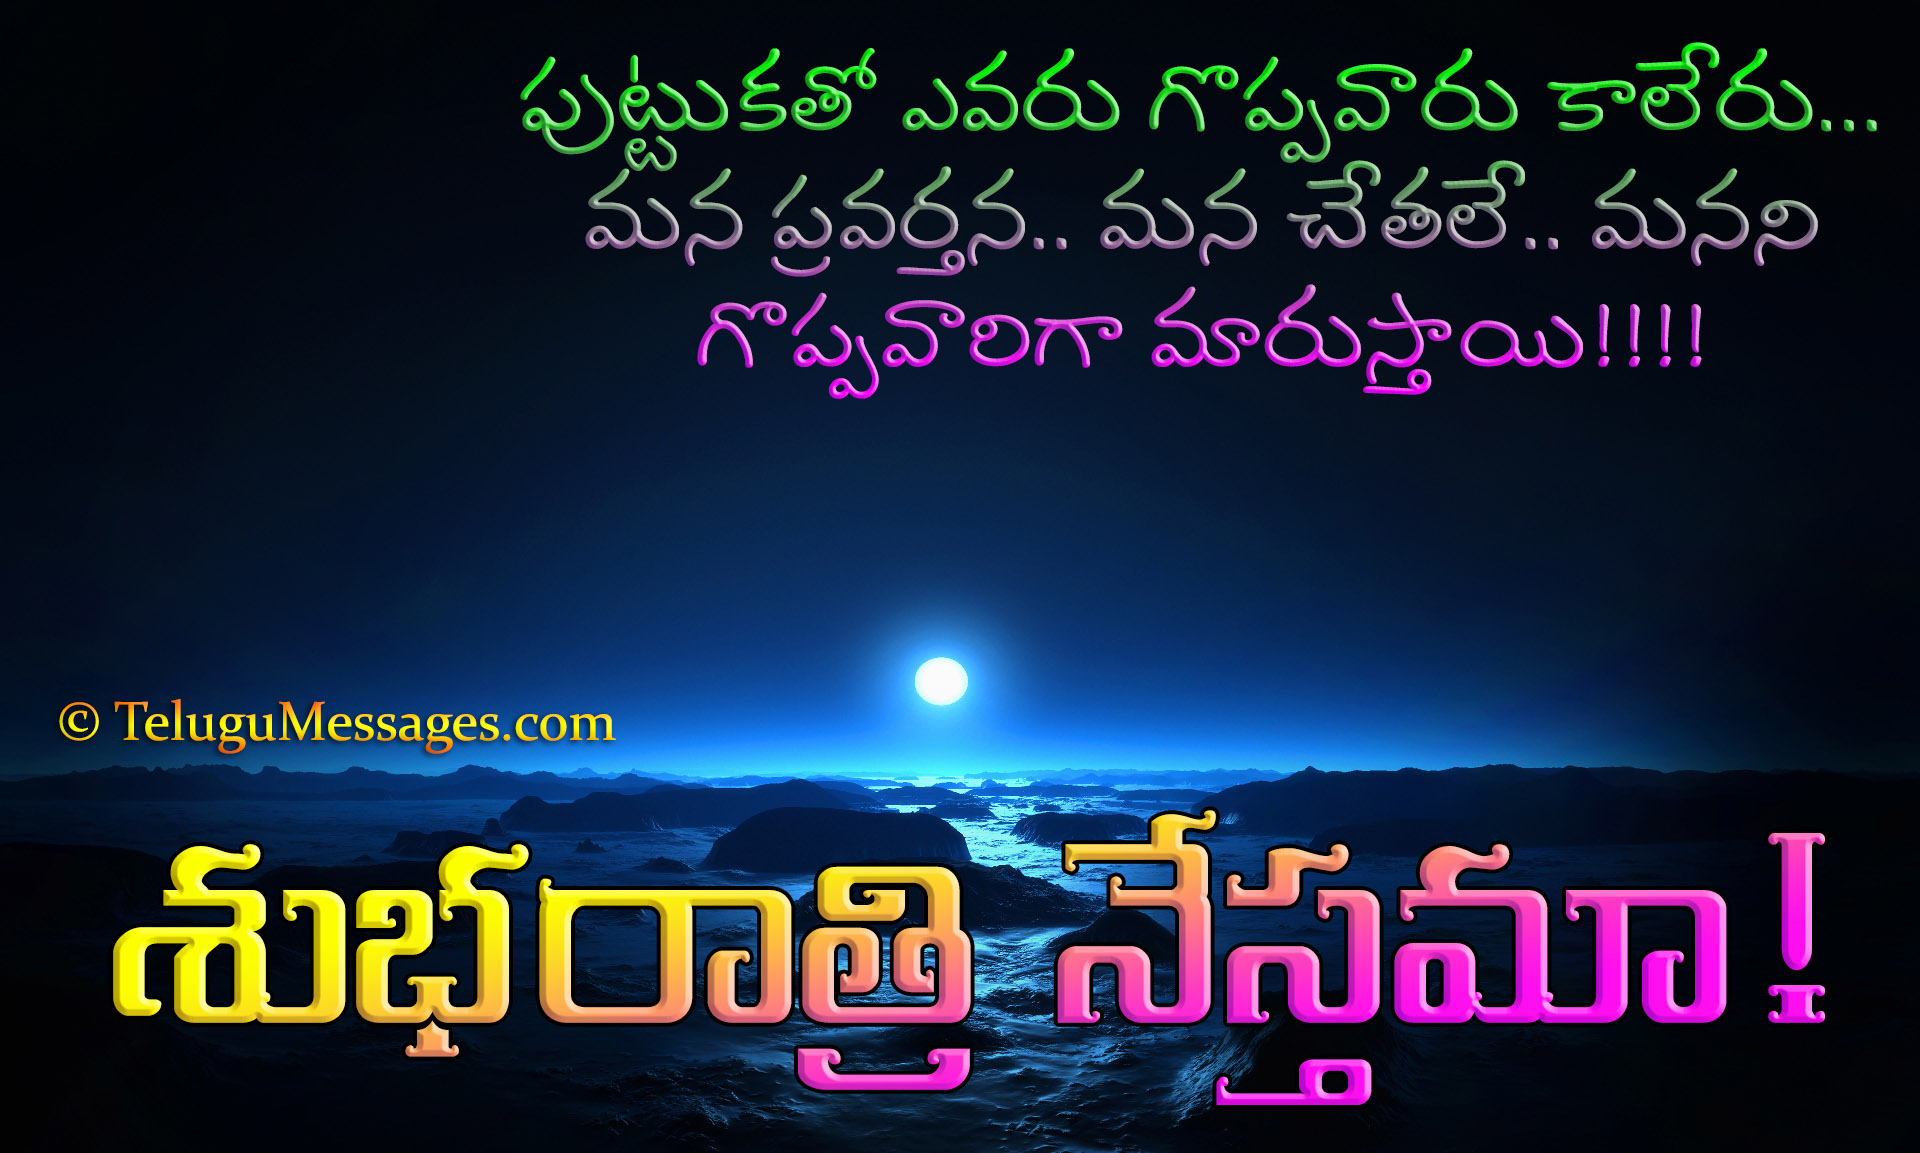 Love at first sight quotes in telugu